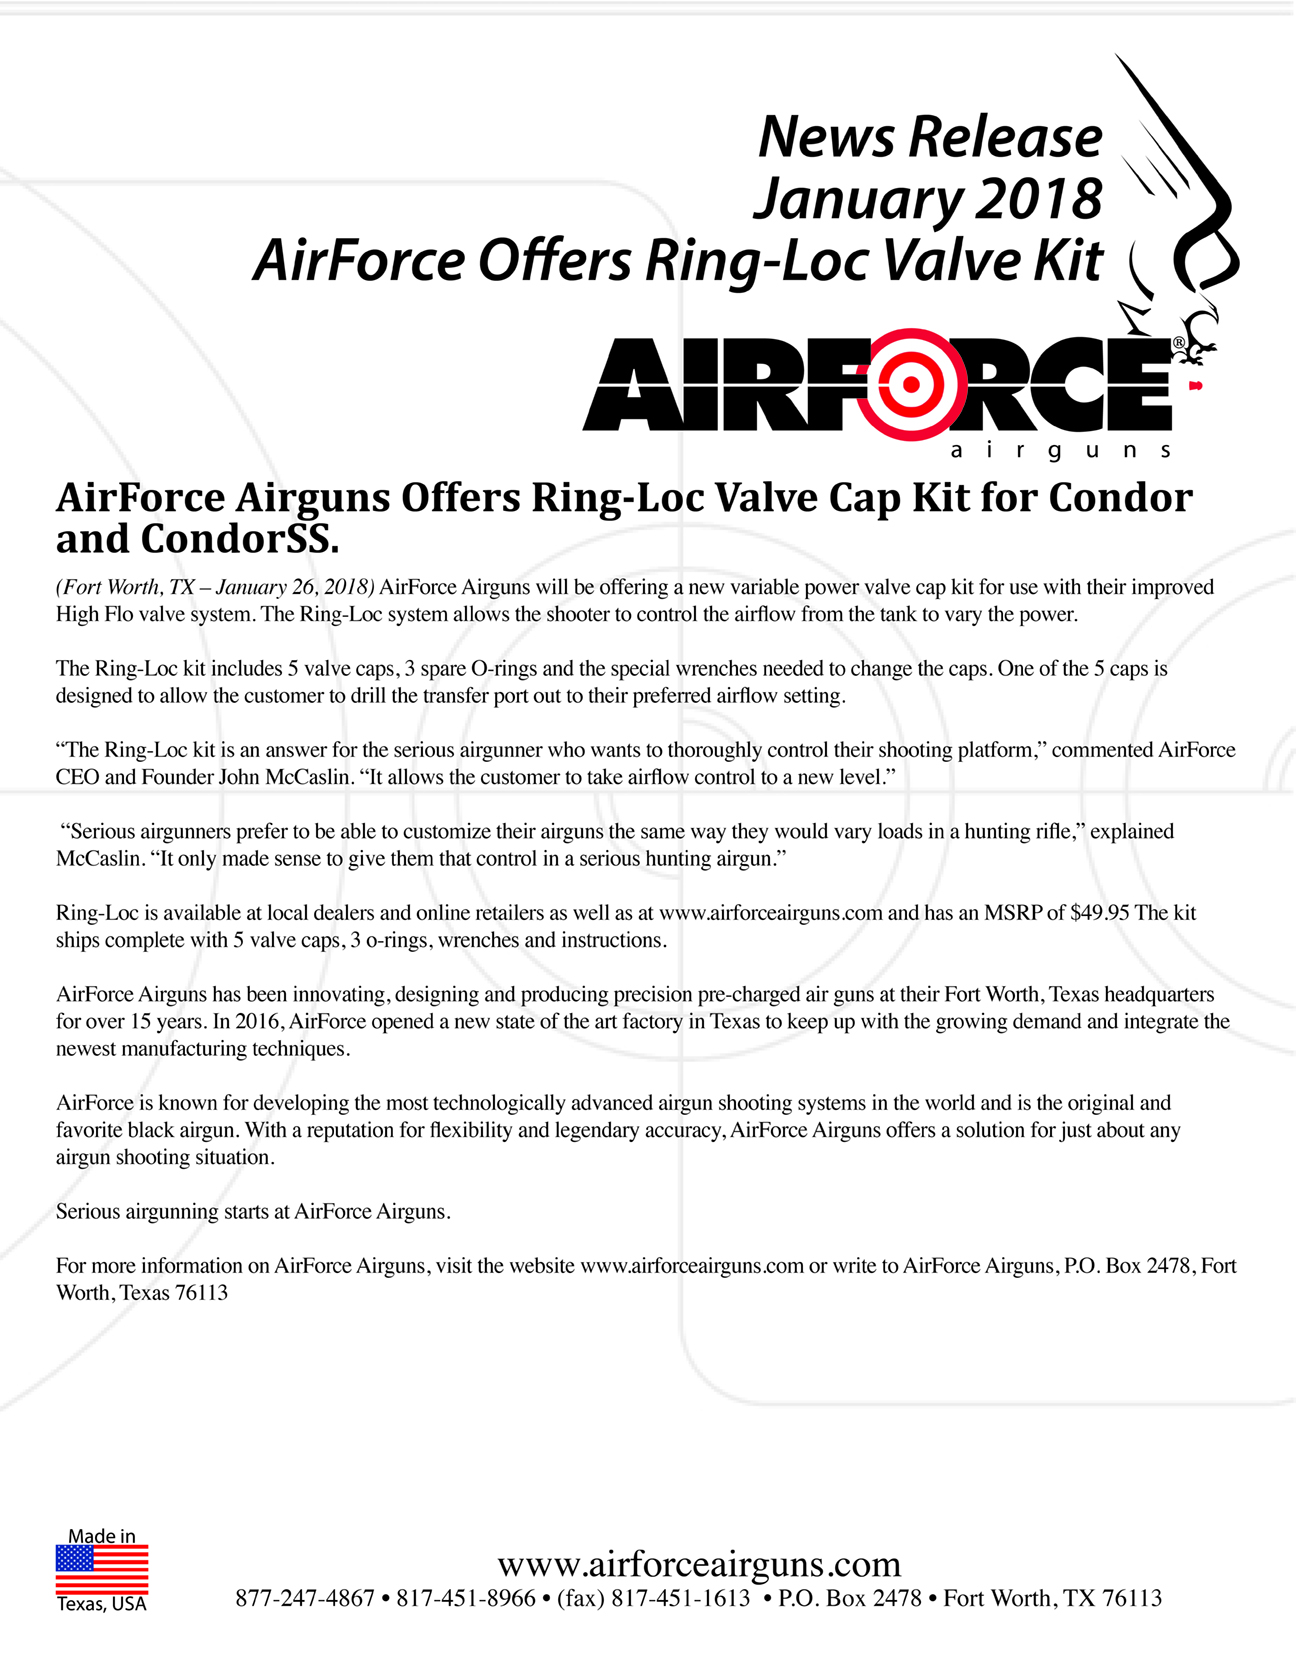 AirForce Airguns Offers Ring-Loc Valve Cap Kit